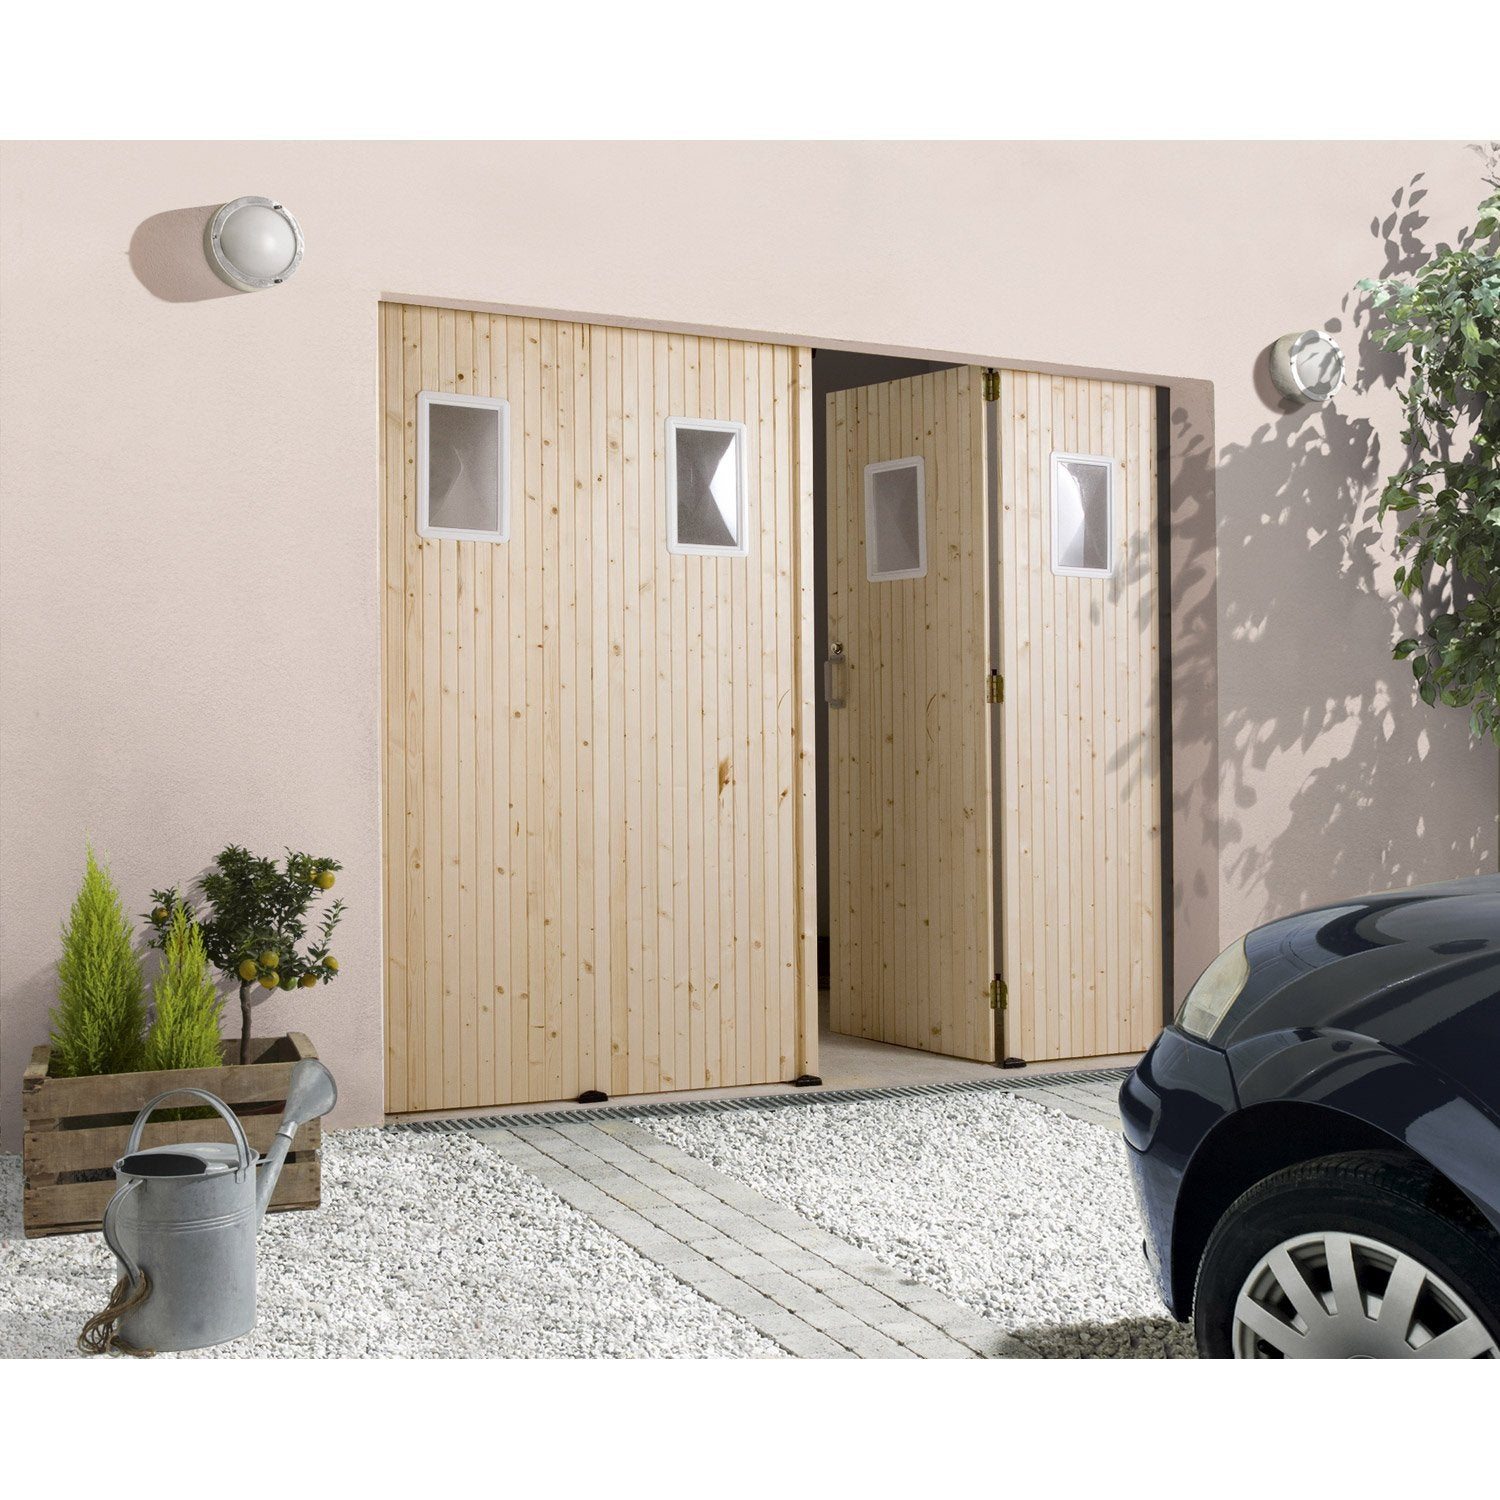 porte de garage pliante manuelle primo 200 x 240 cm avec hublot leroy merlin. Black Bedroom Furniture Sets. Home Design Ideas